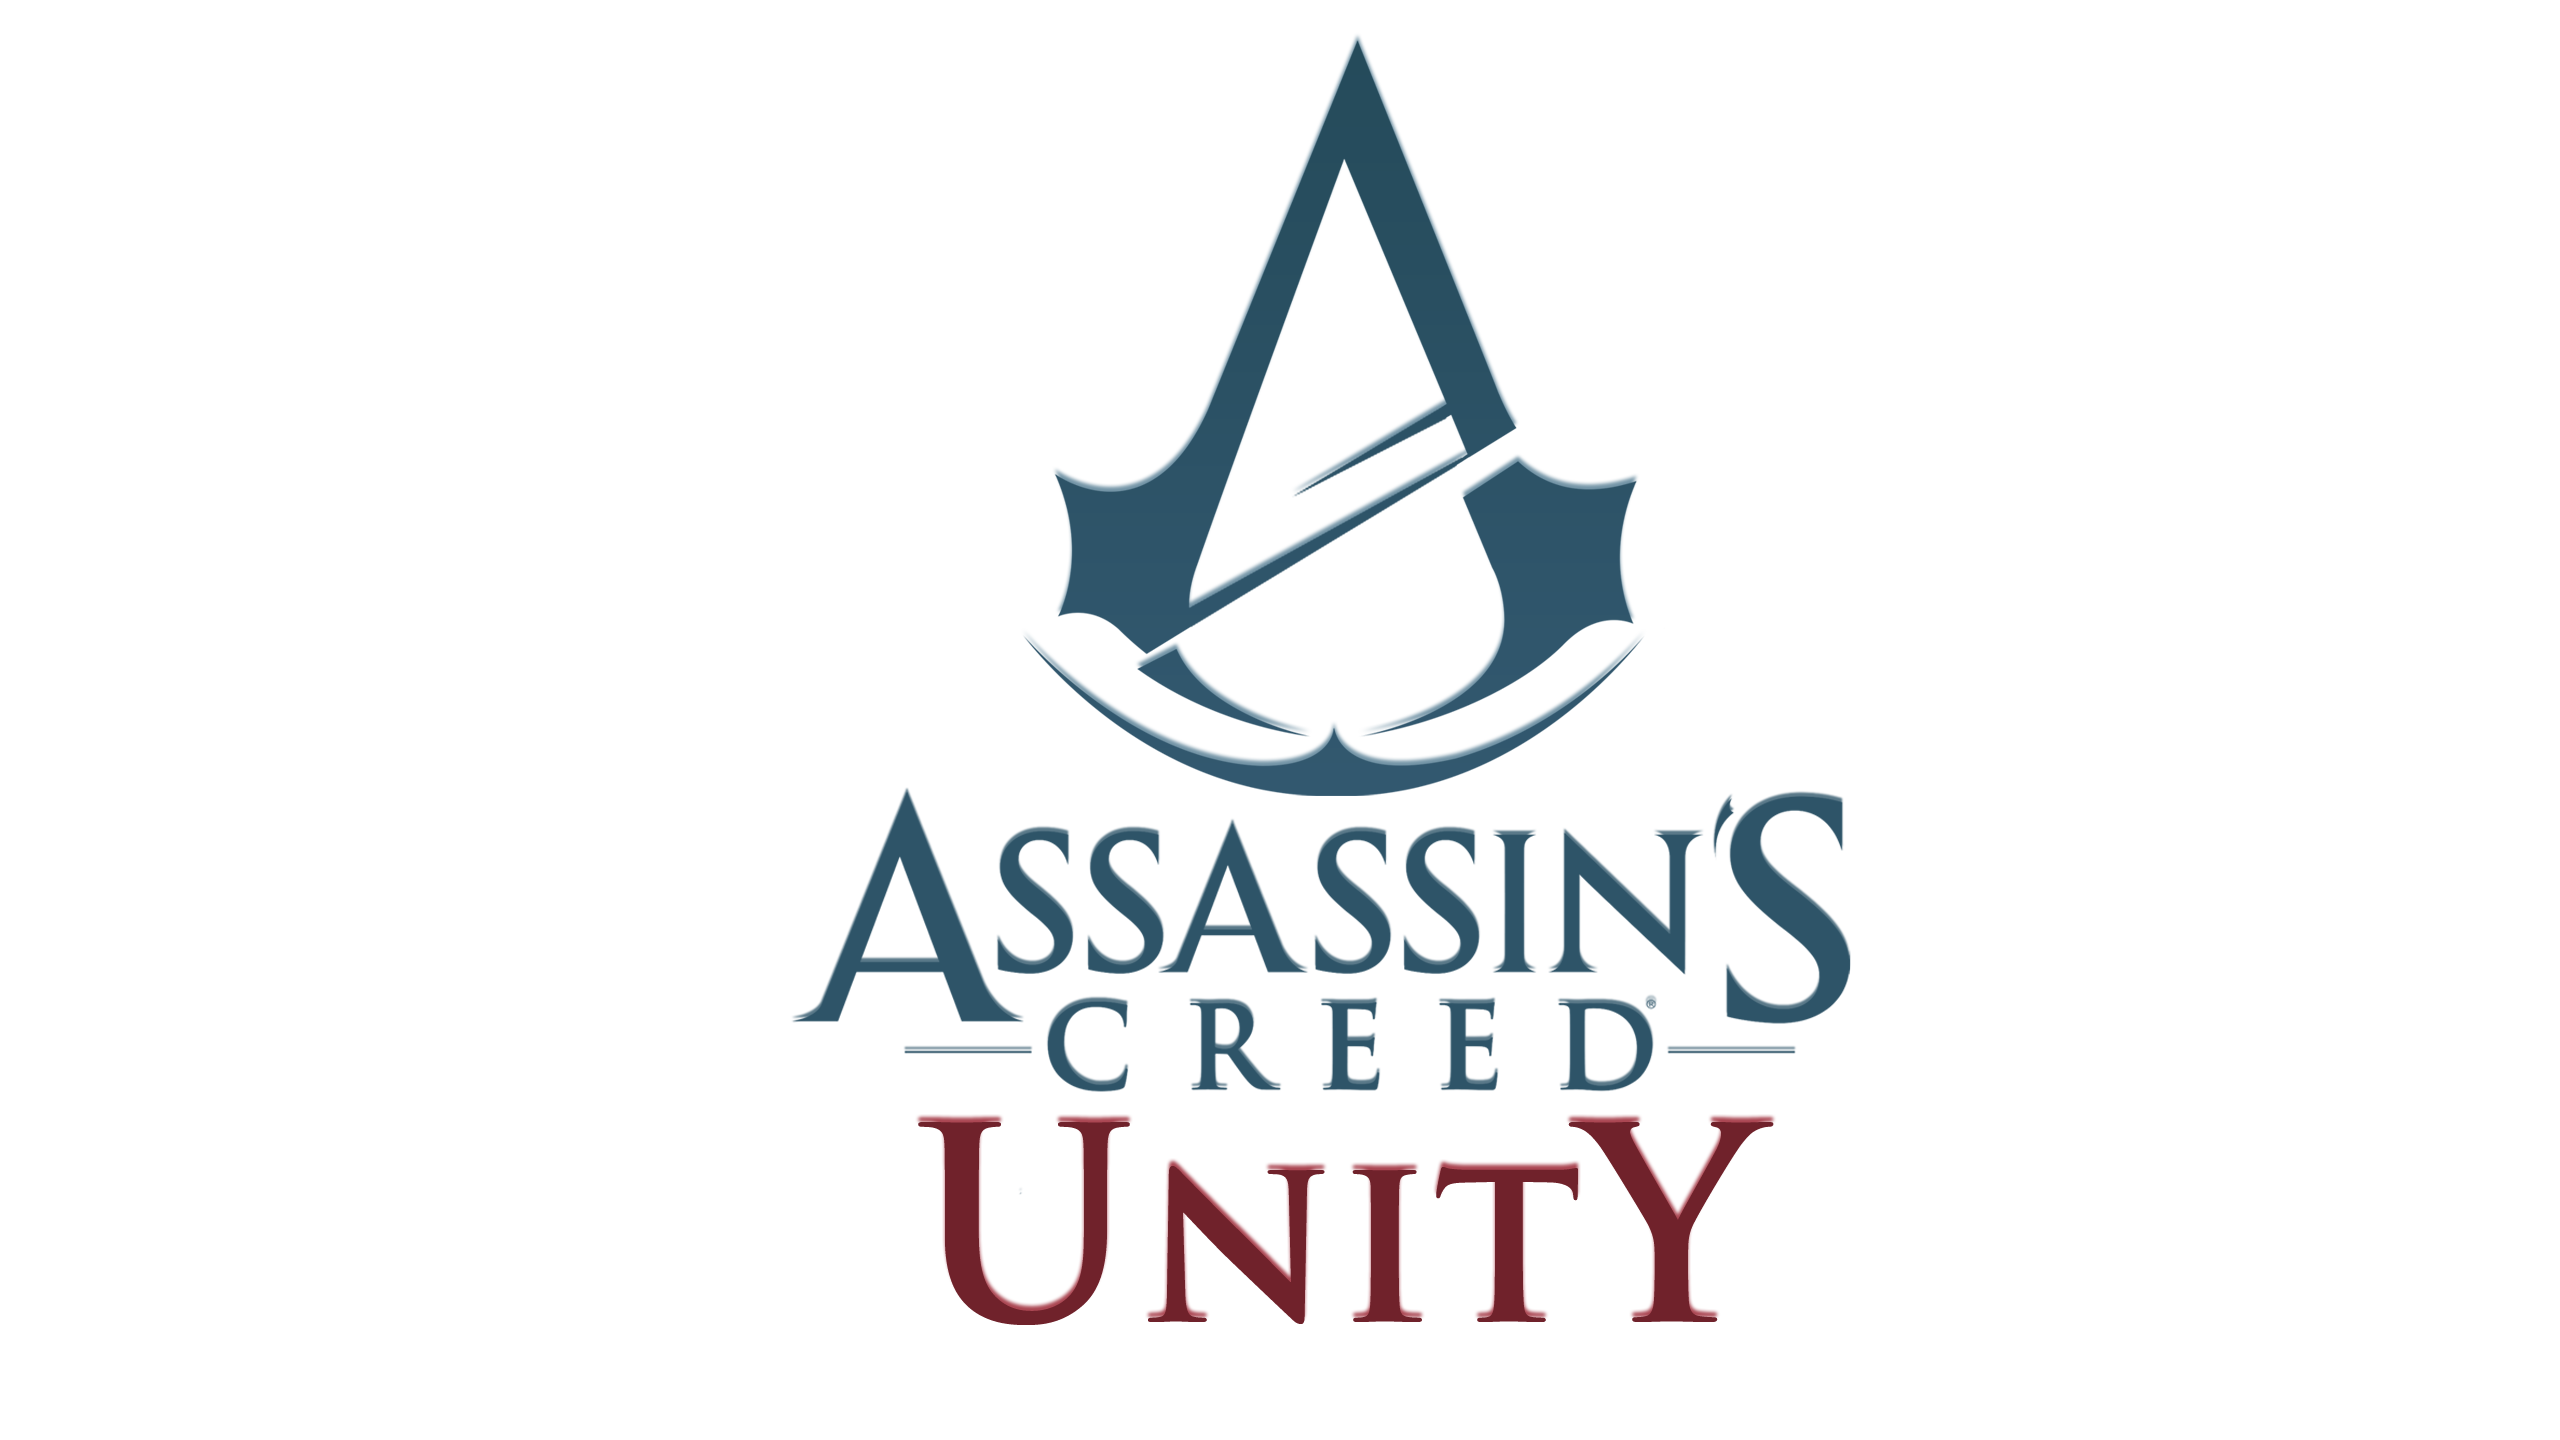 Assassin's Creed: Unity Logo (Transparent) by youknowwho77